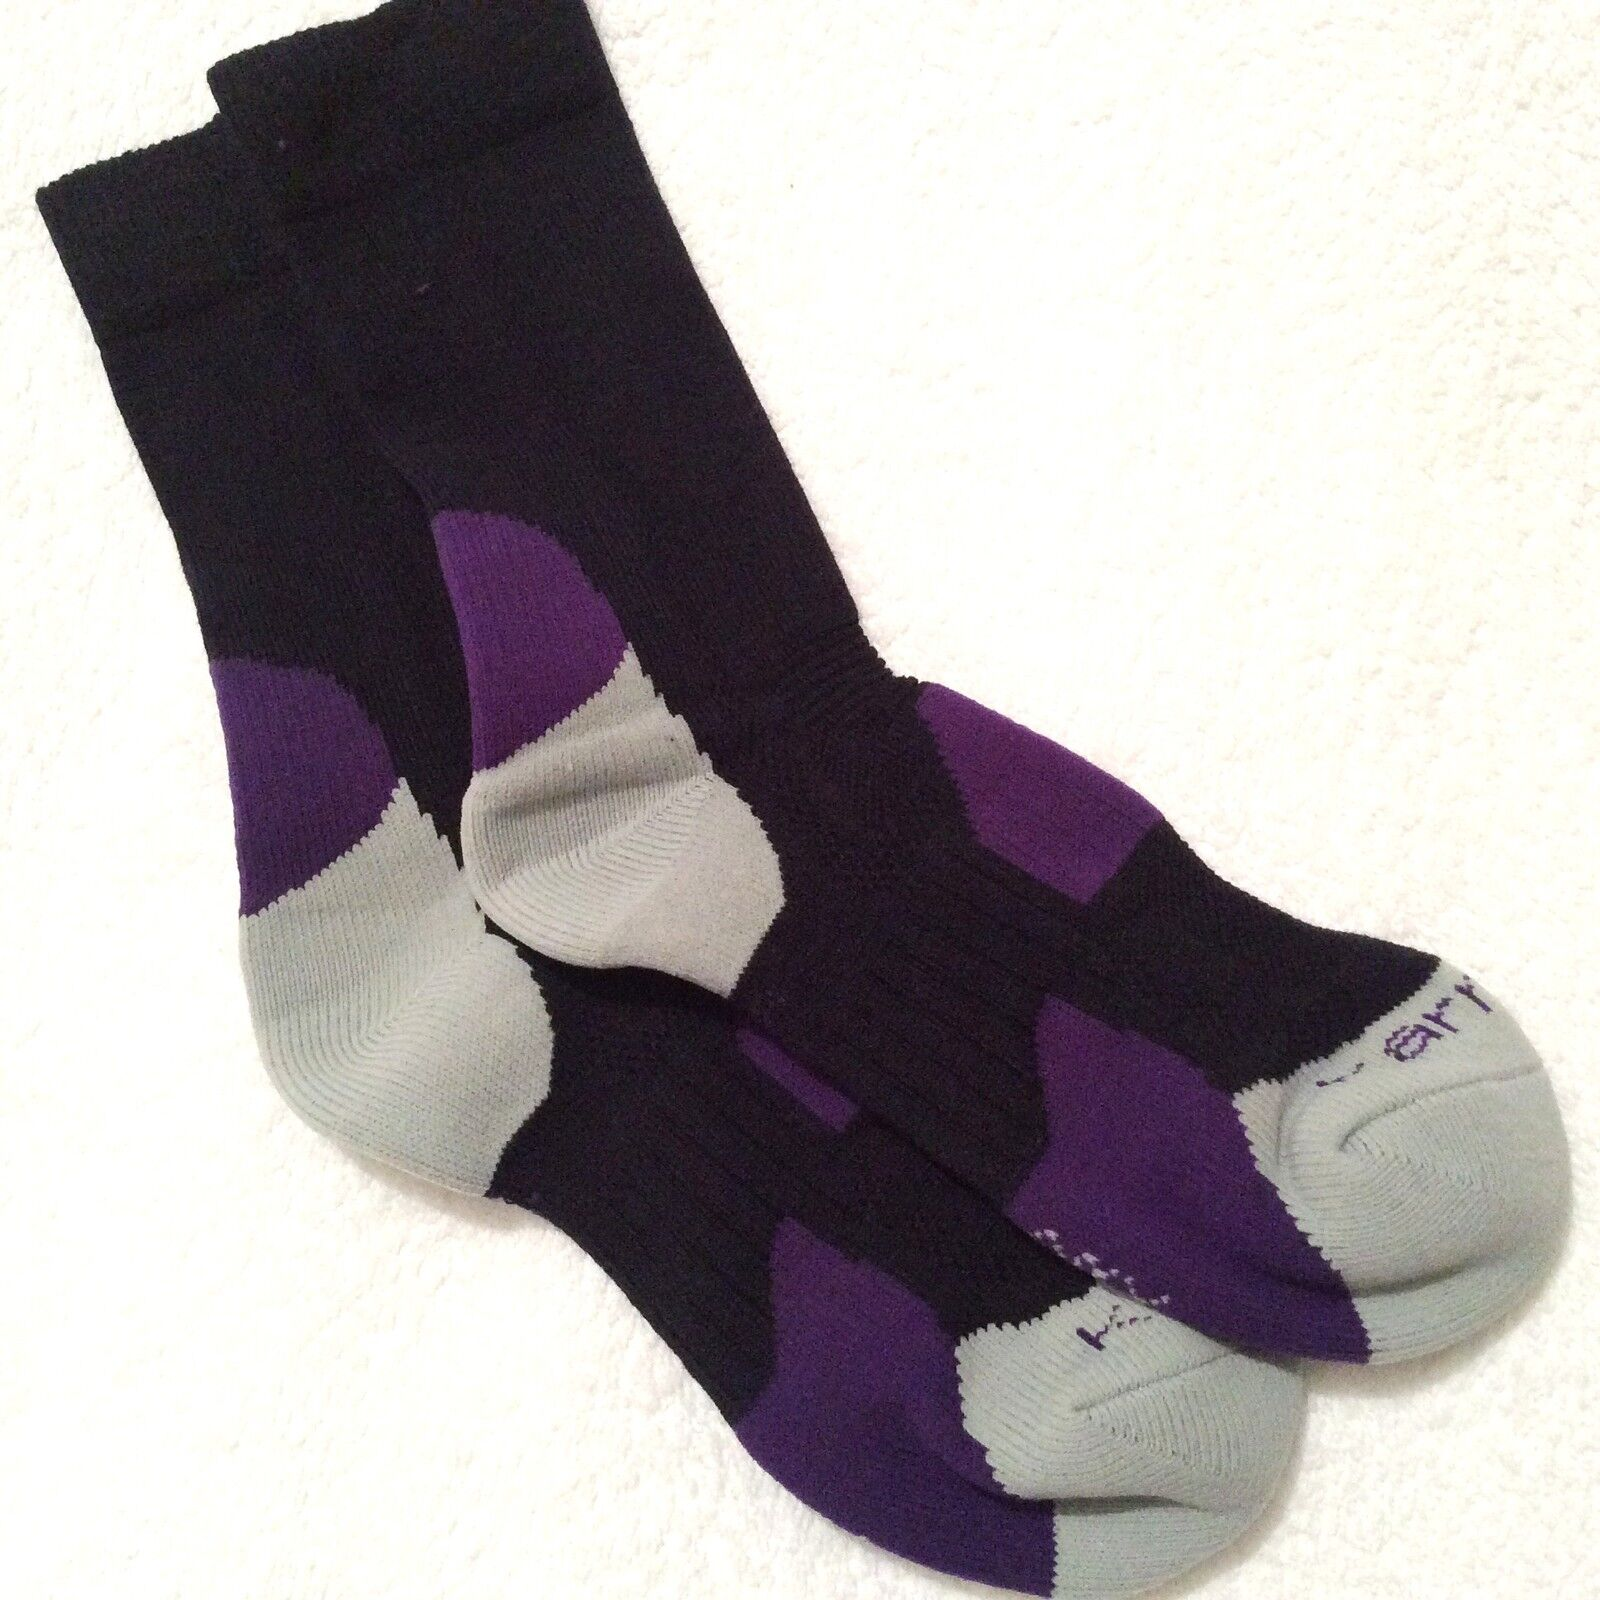 LADIES HI QUALITY LONG CAMPRI NAVY LILAC MERINO WOOL BLEND BREATHABLE SKI SOCKS